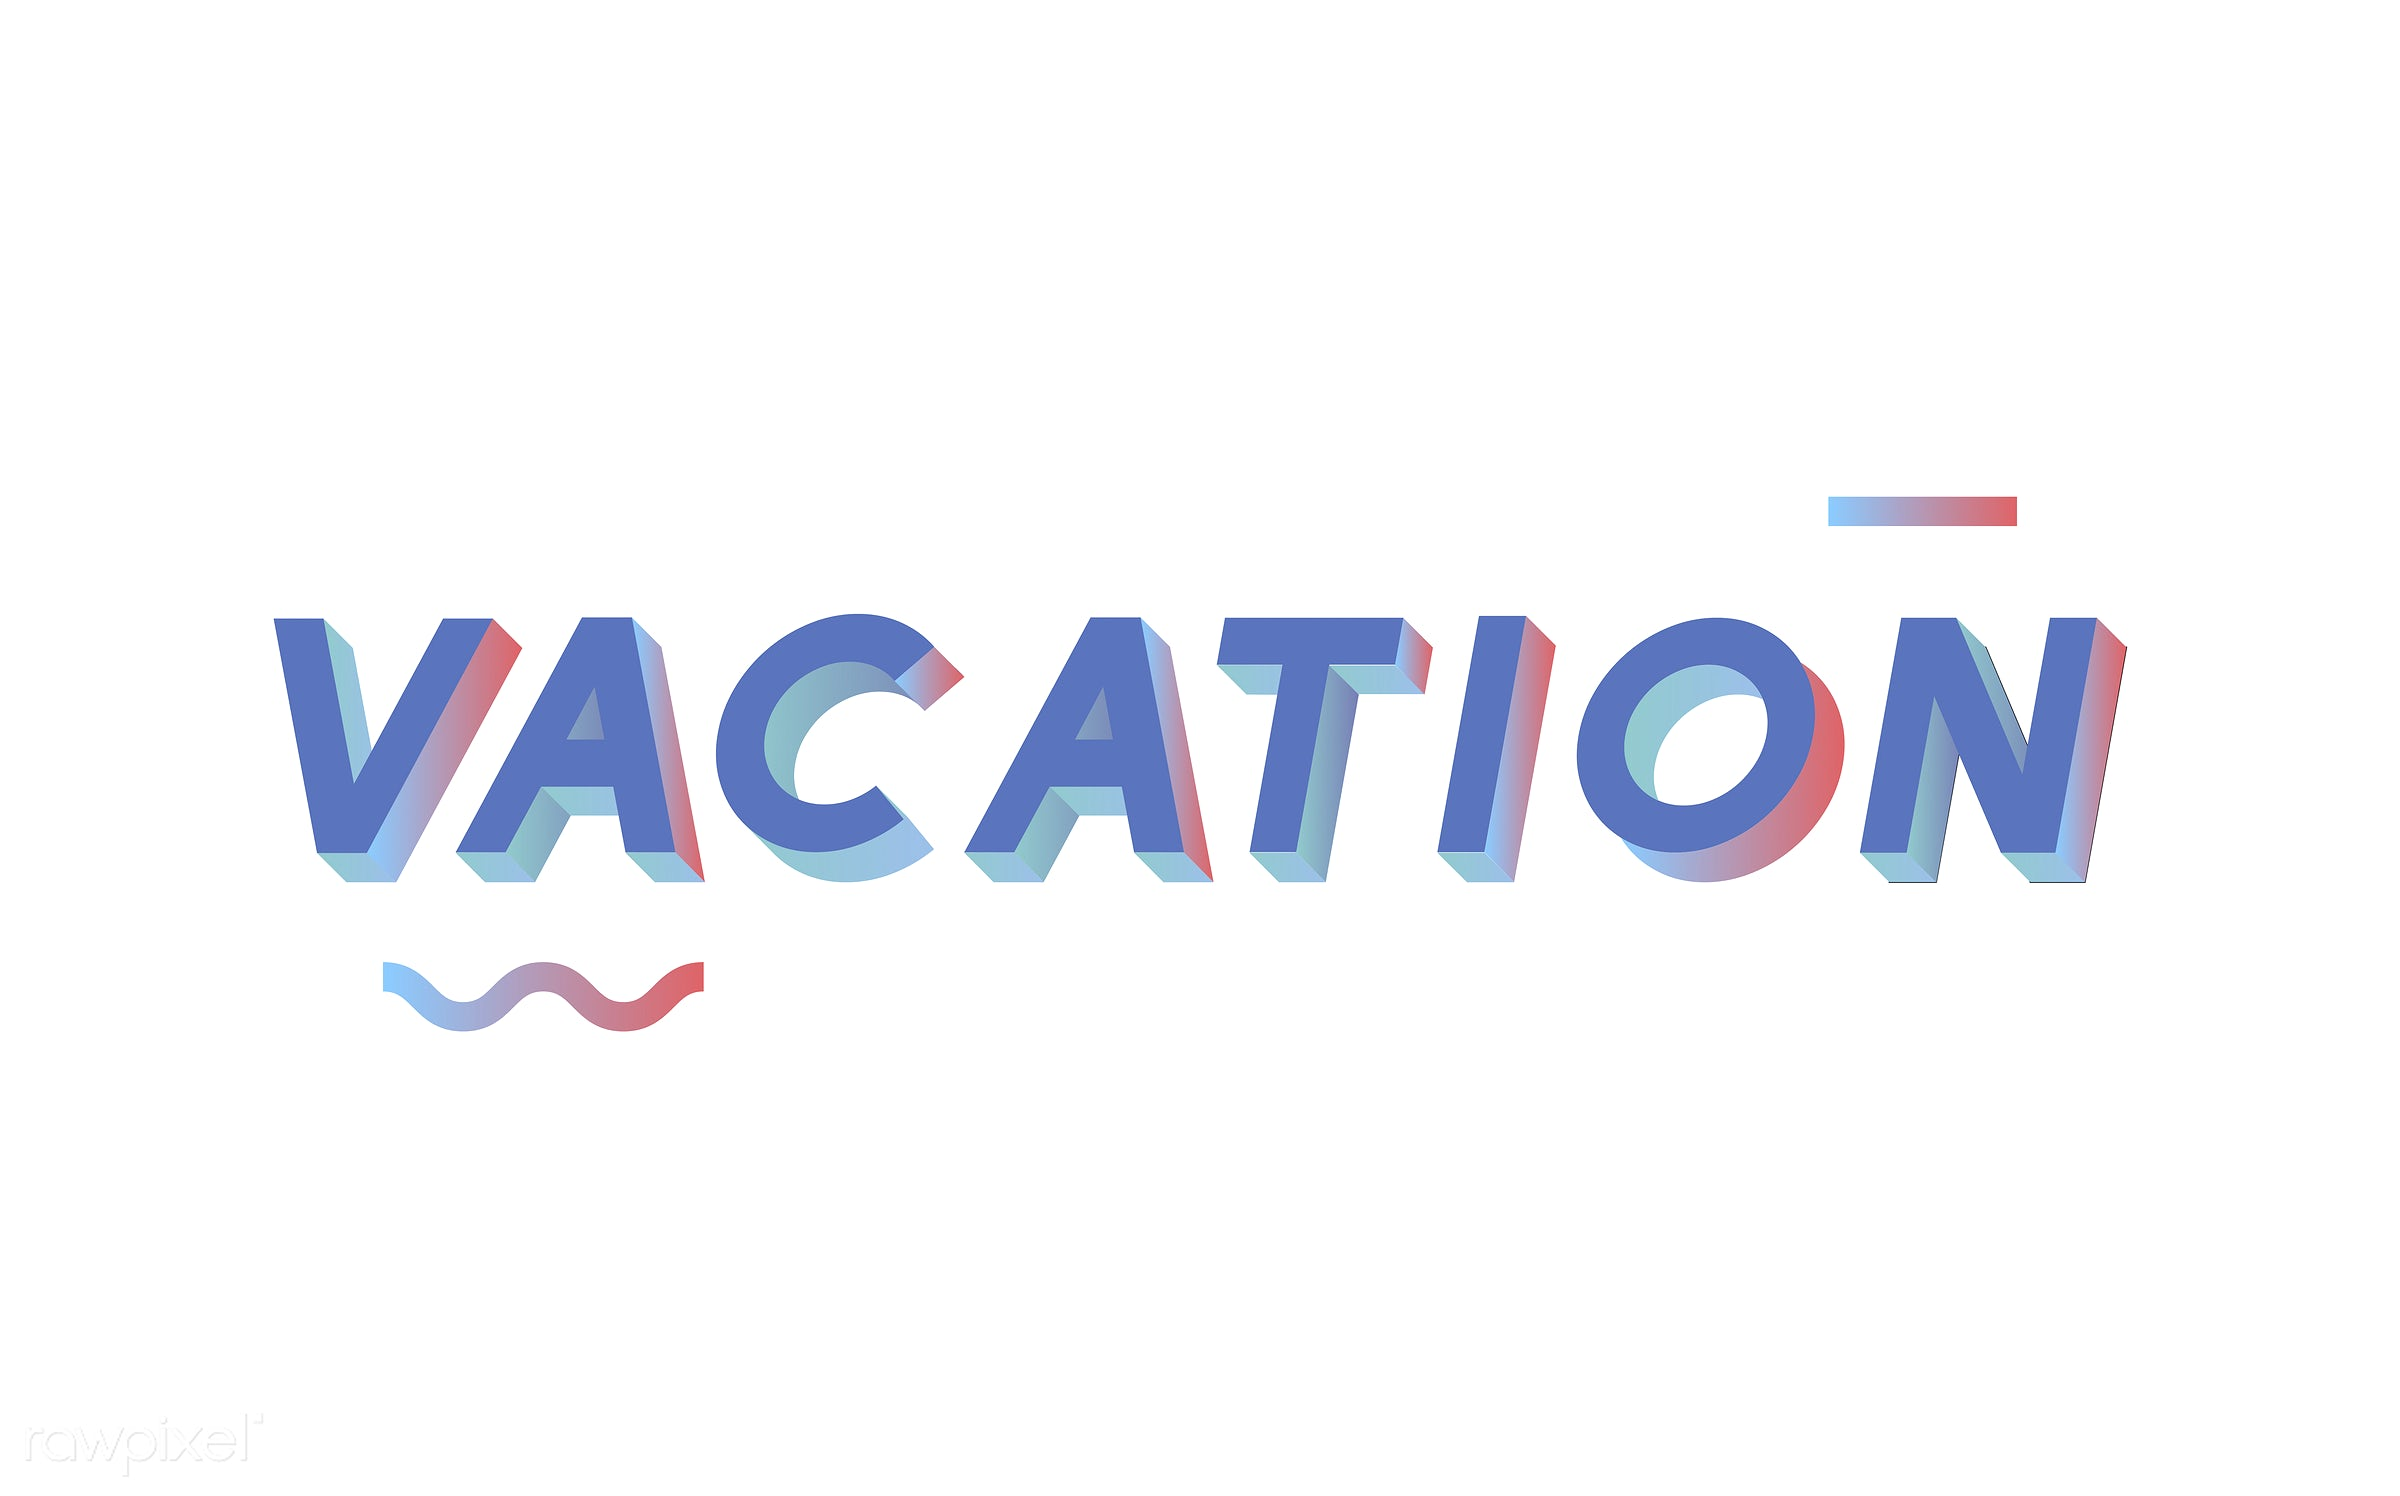 neon, colorful, 3d, three dimensional, vector, illustration, graphic, word, white, blue, vacation, holiday